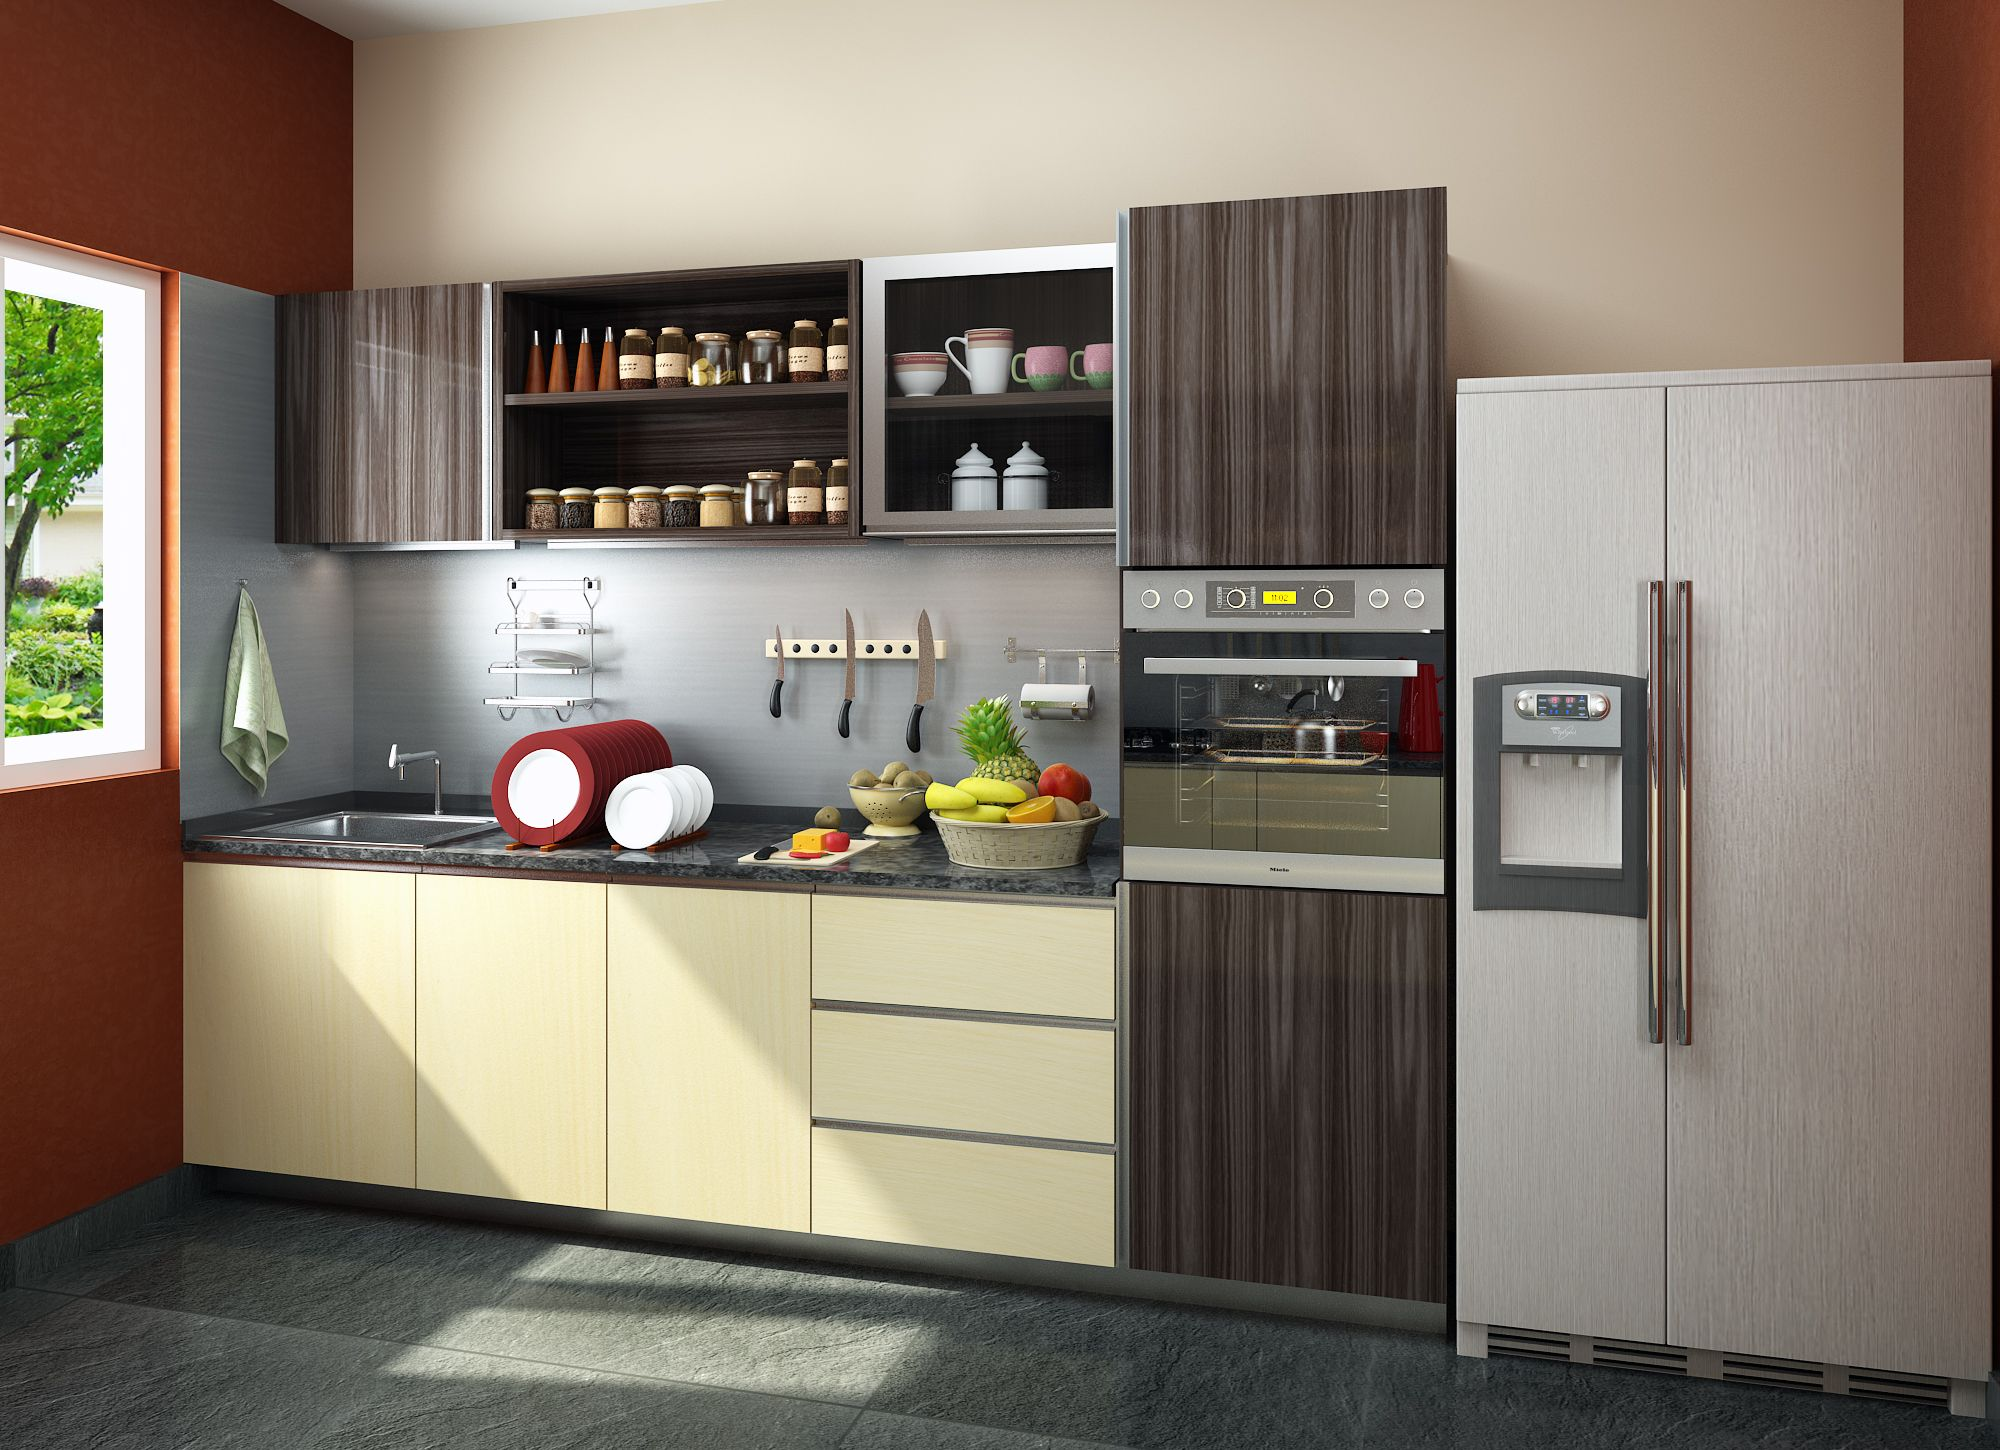 girgit gives you all the best interior designers in bangalore for